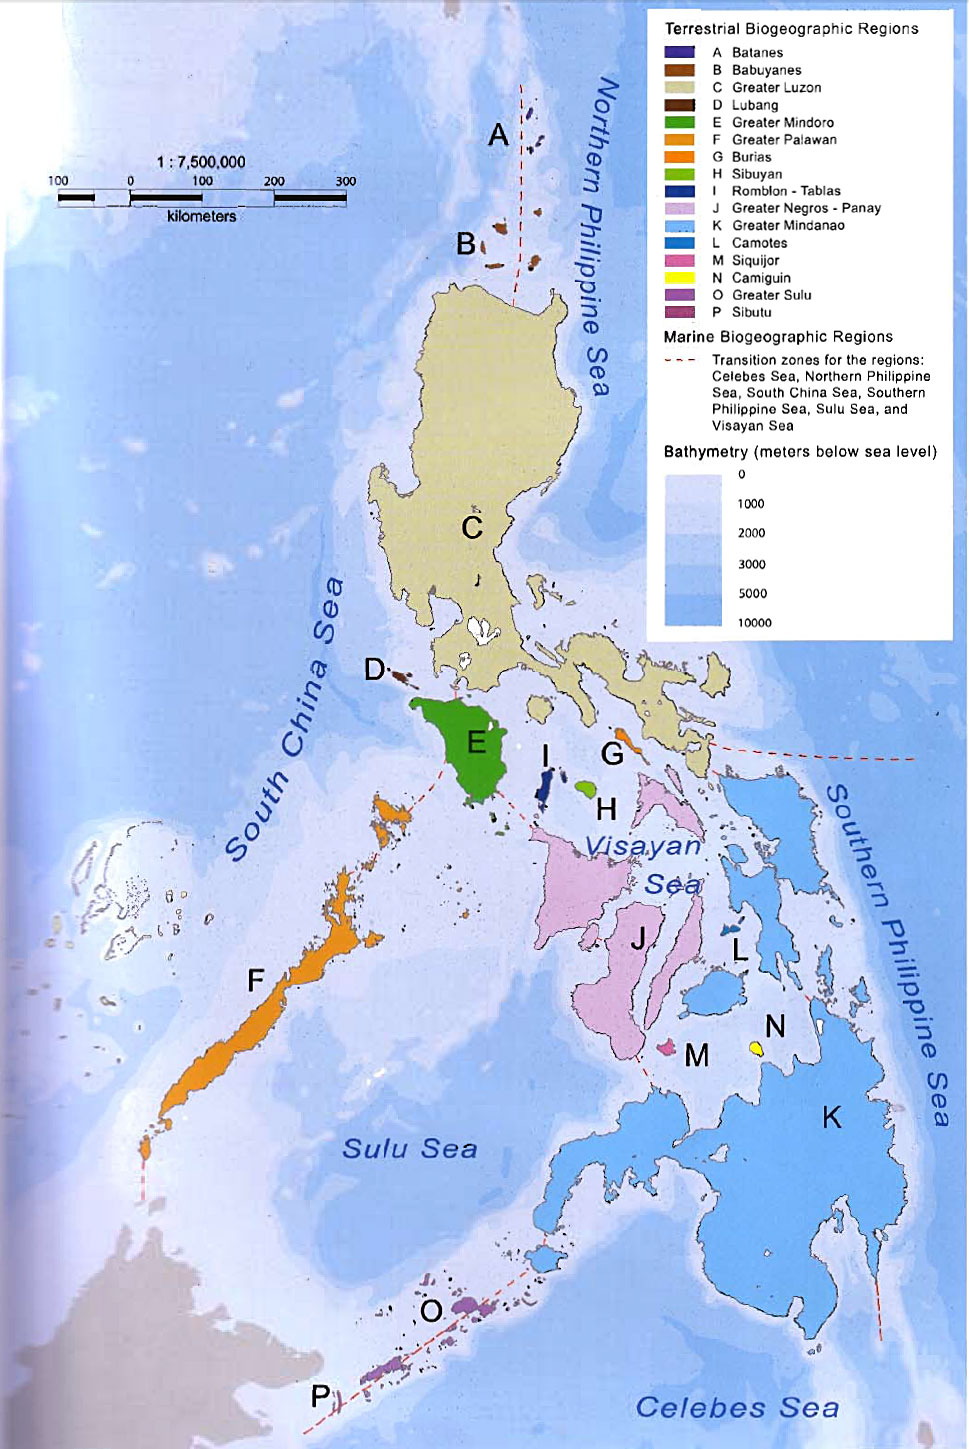 The Biogeographic Regions of the Philippines